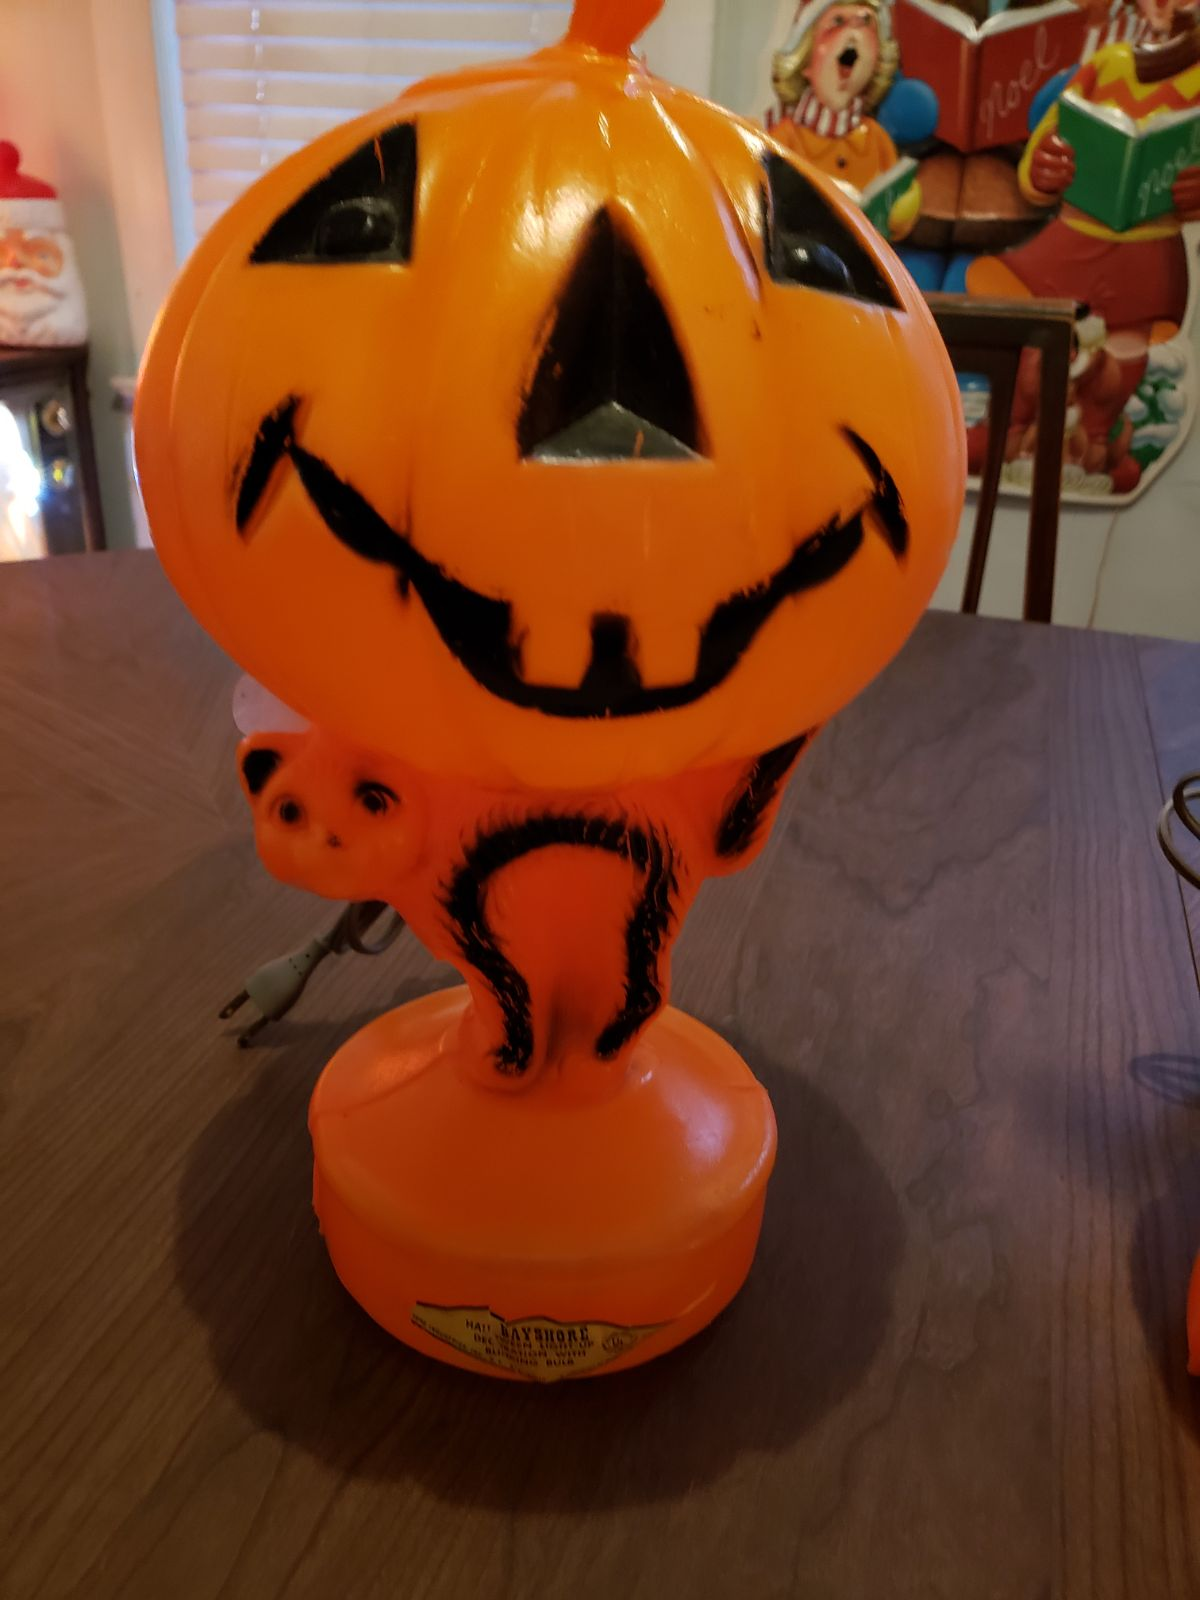 Bayshore Blow Mold Halloween Table Top